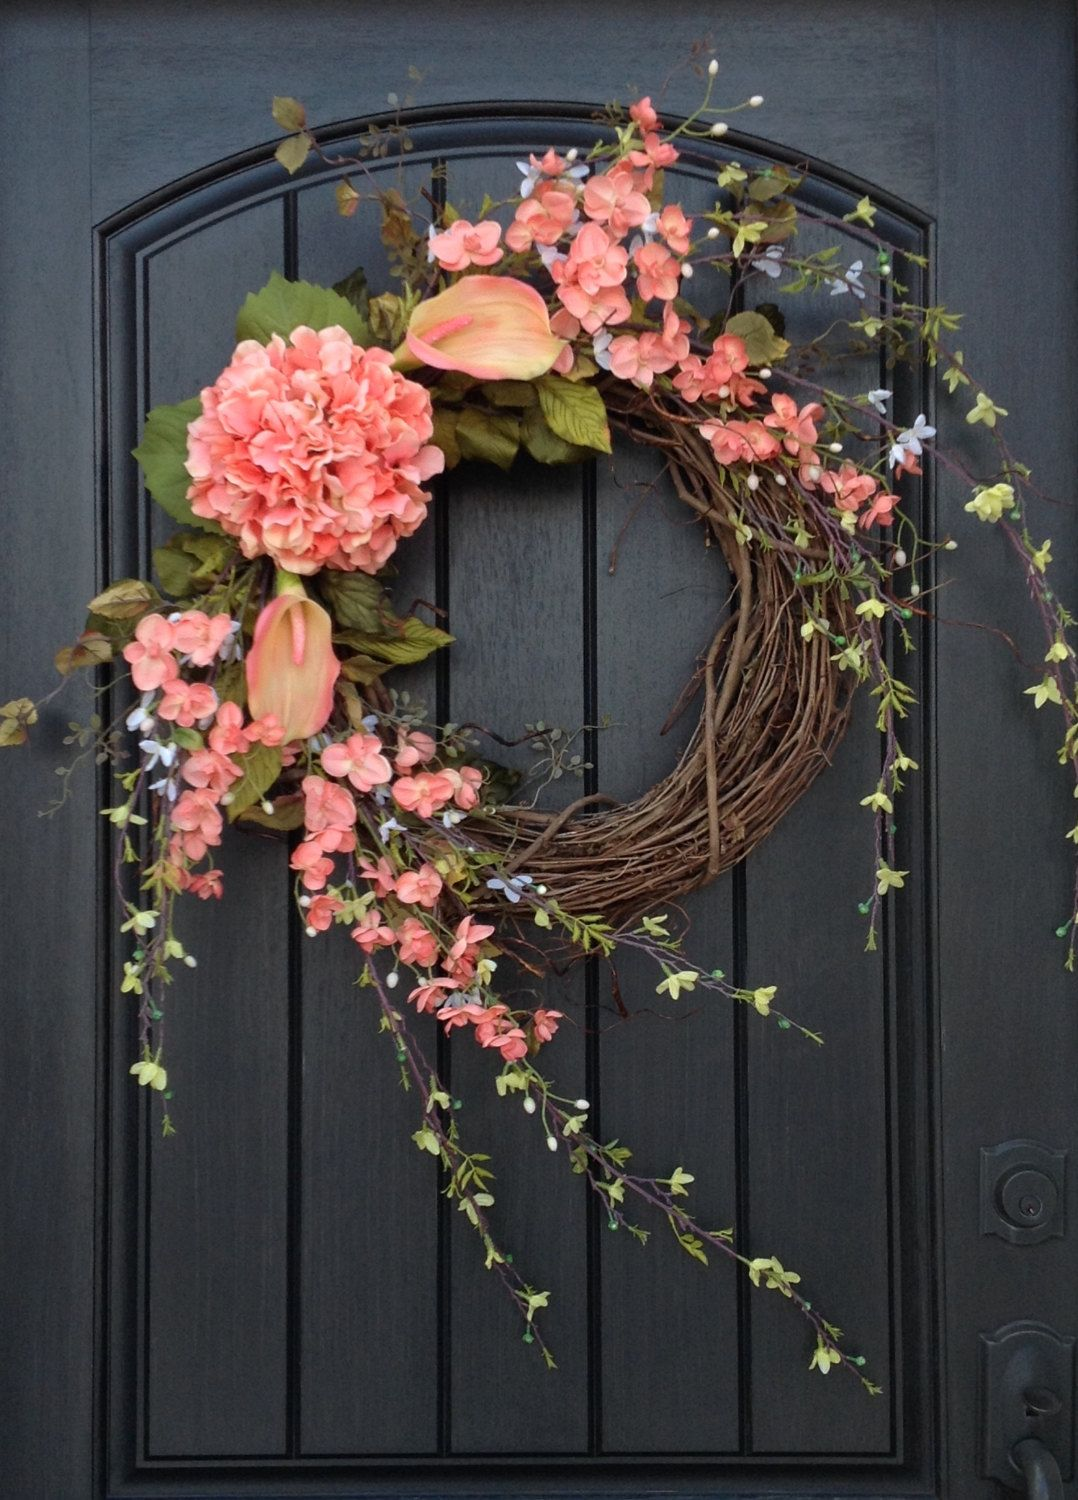 Summer front door decorations - Spring Wreath Summer Wreath Floral White Green Branches Door Wreath Grapevine Wreath Decor Coral Peach Lilies Wispy Easter Mothers Day